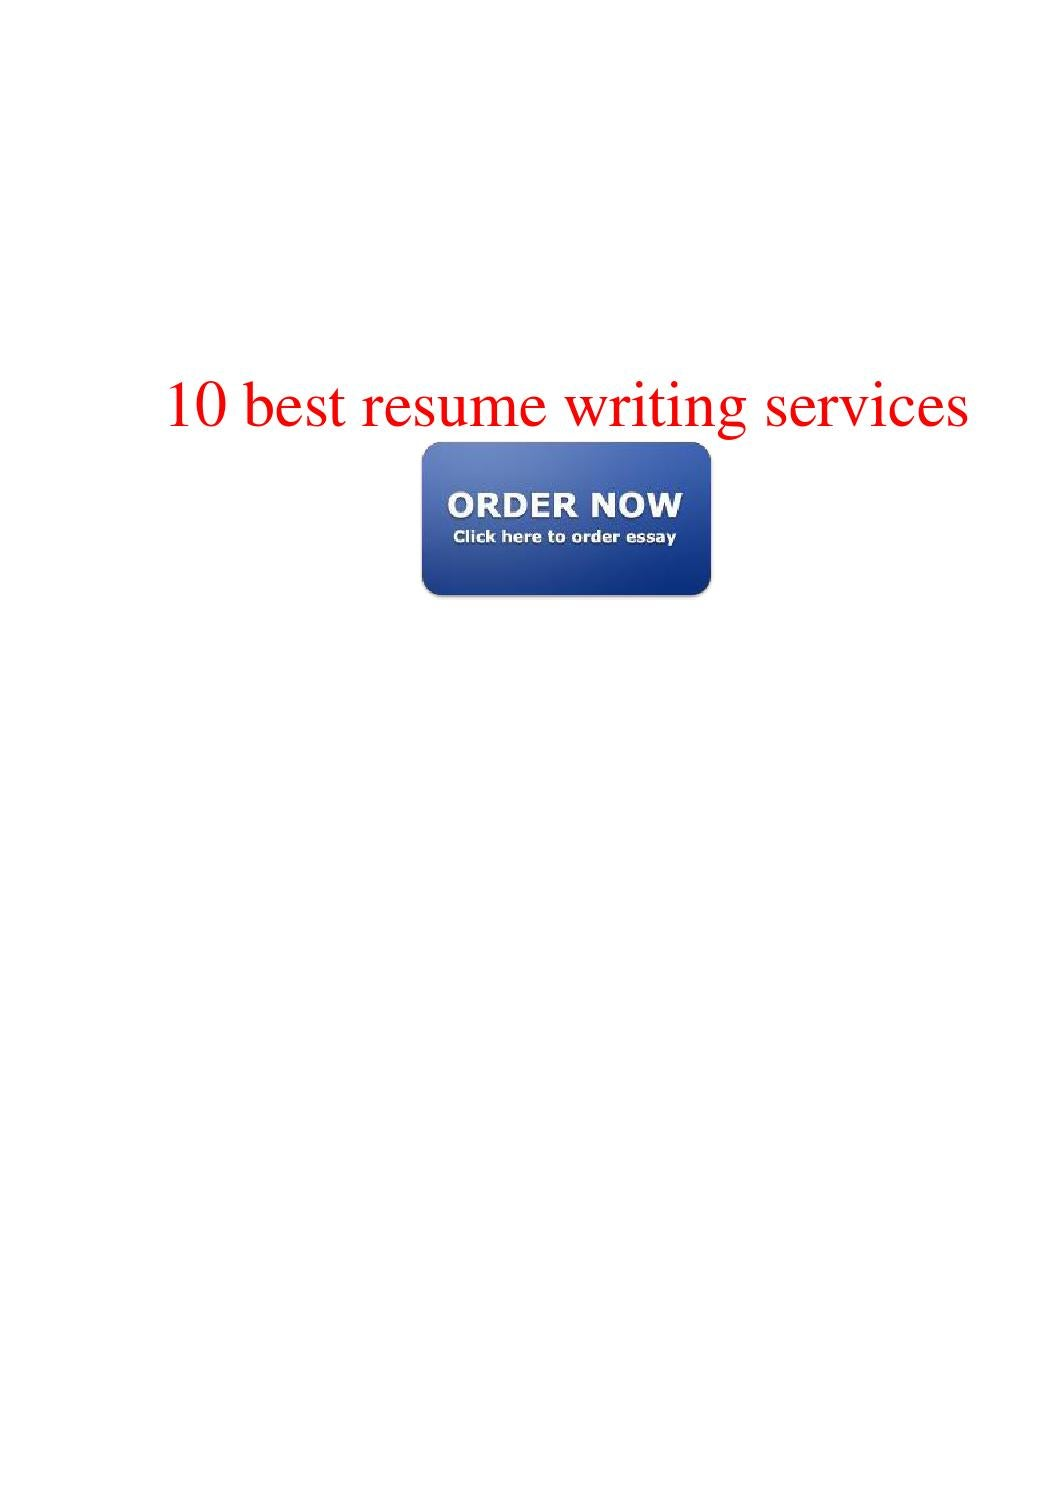 10 best resume writing services reviews related post of 10 best resume writing services reviews